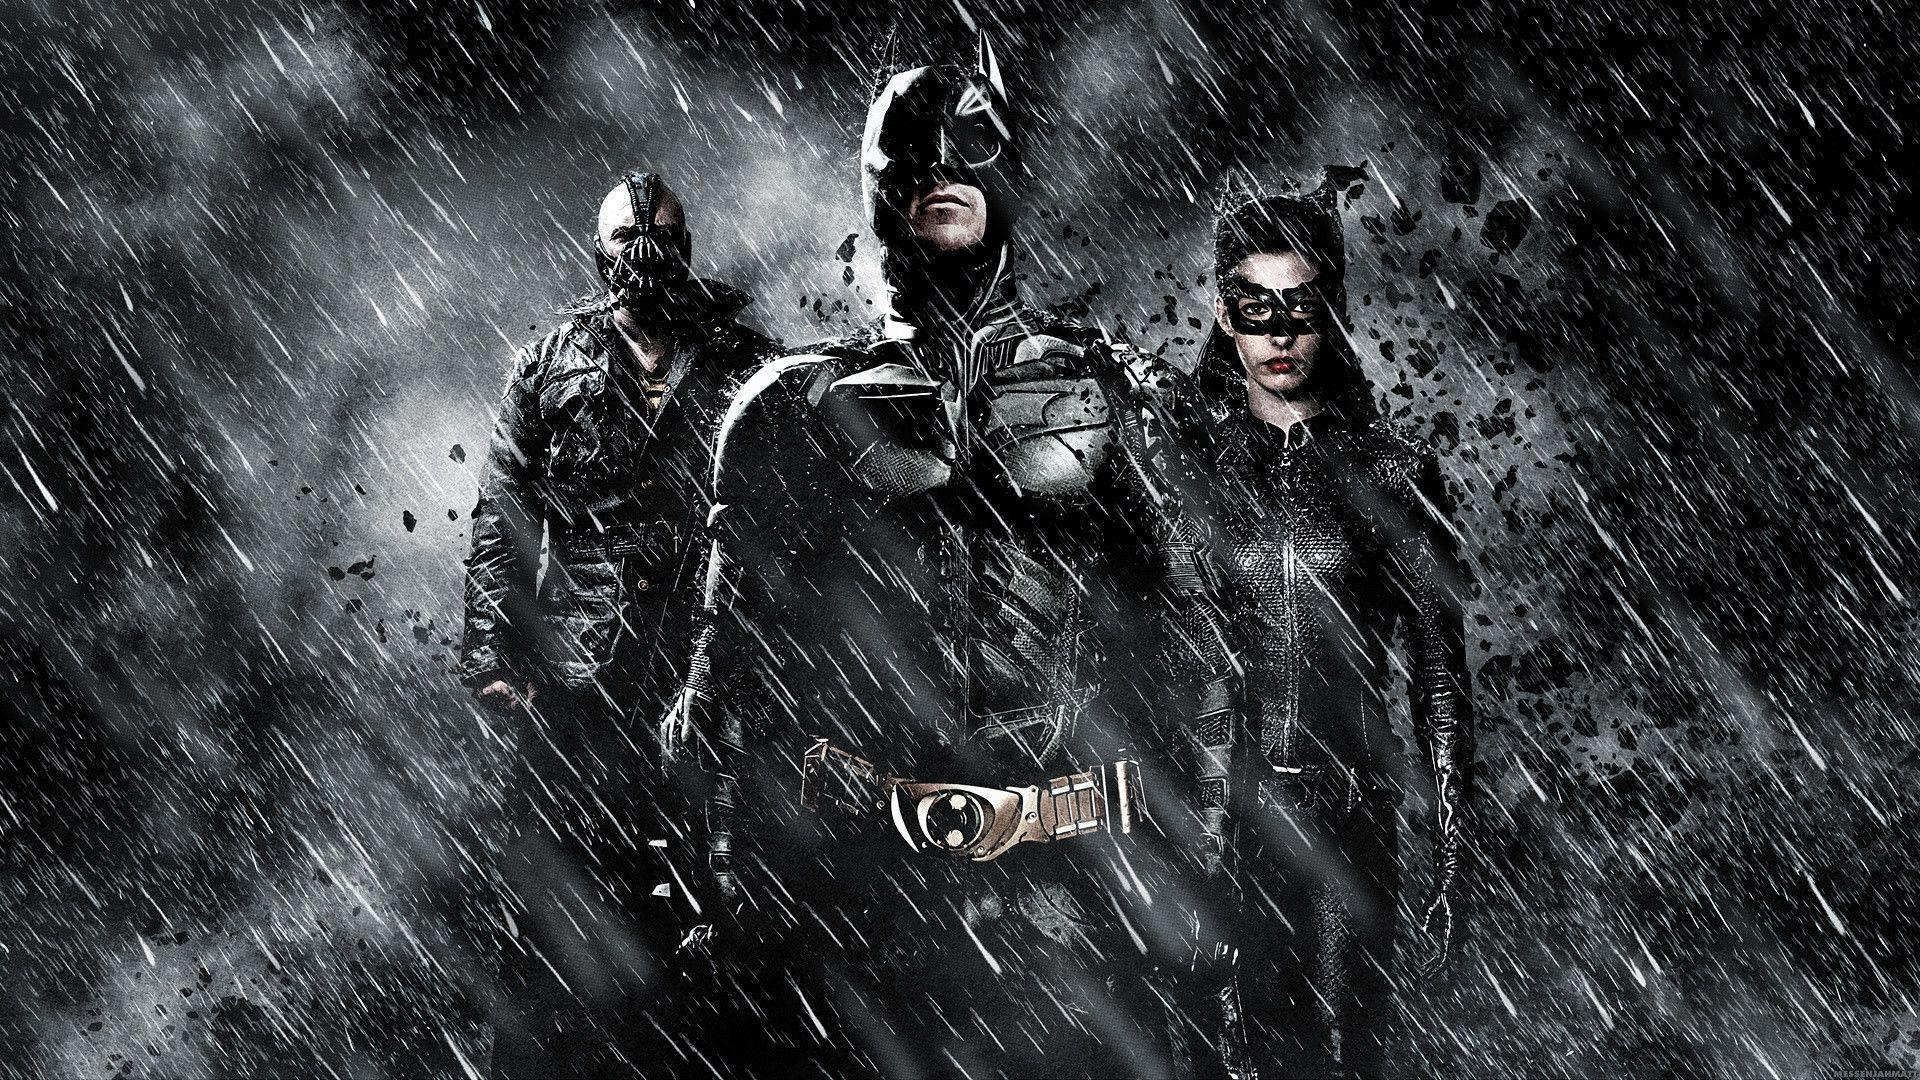 Batman The Dark Knight Rises Wallpapers Top Free Batman